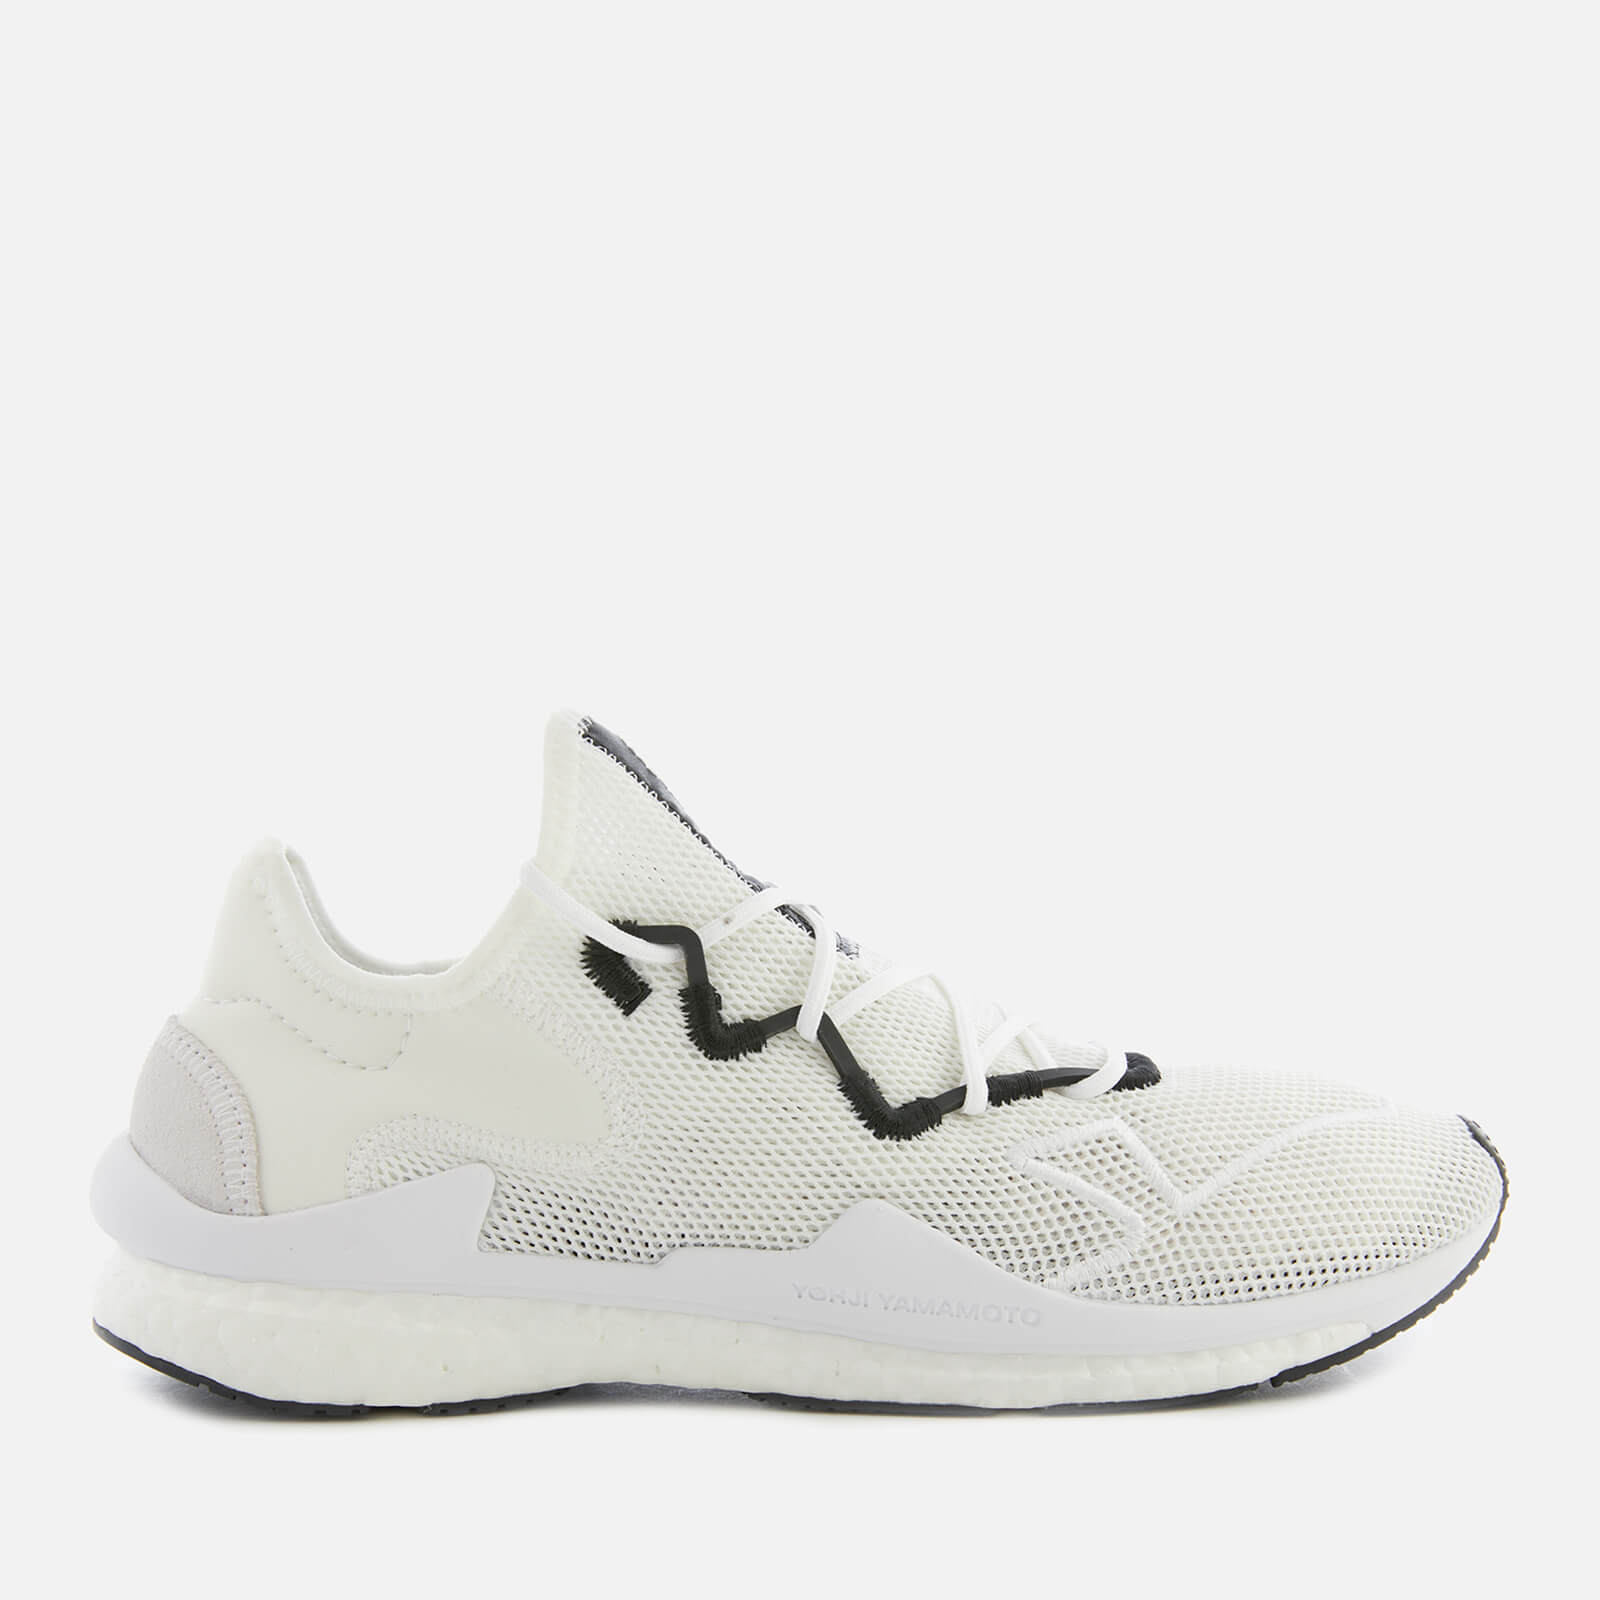 79feb2f41 Y-3 Men s Adizero Runner Trainers - White - Free UK Delivery over £50